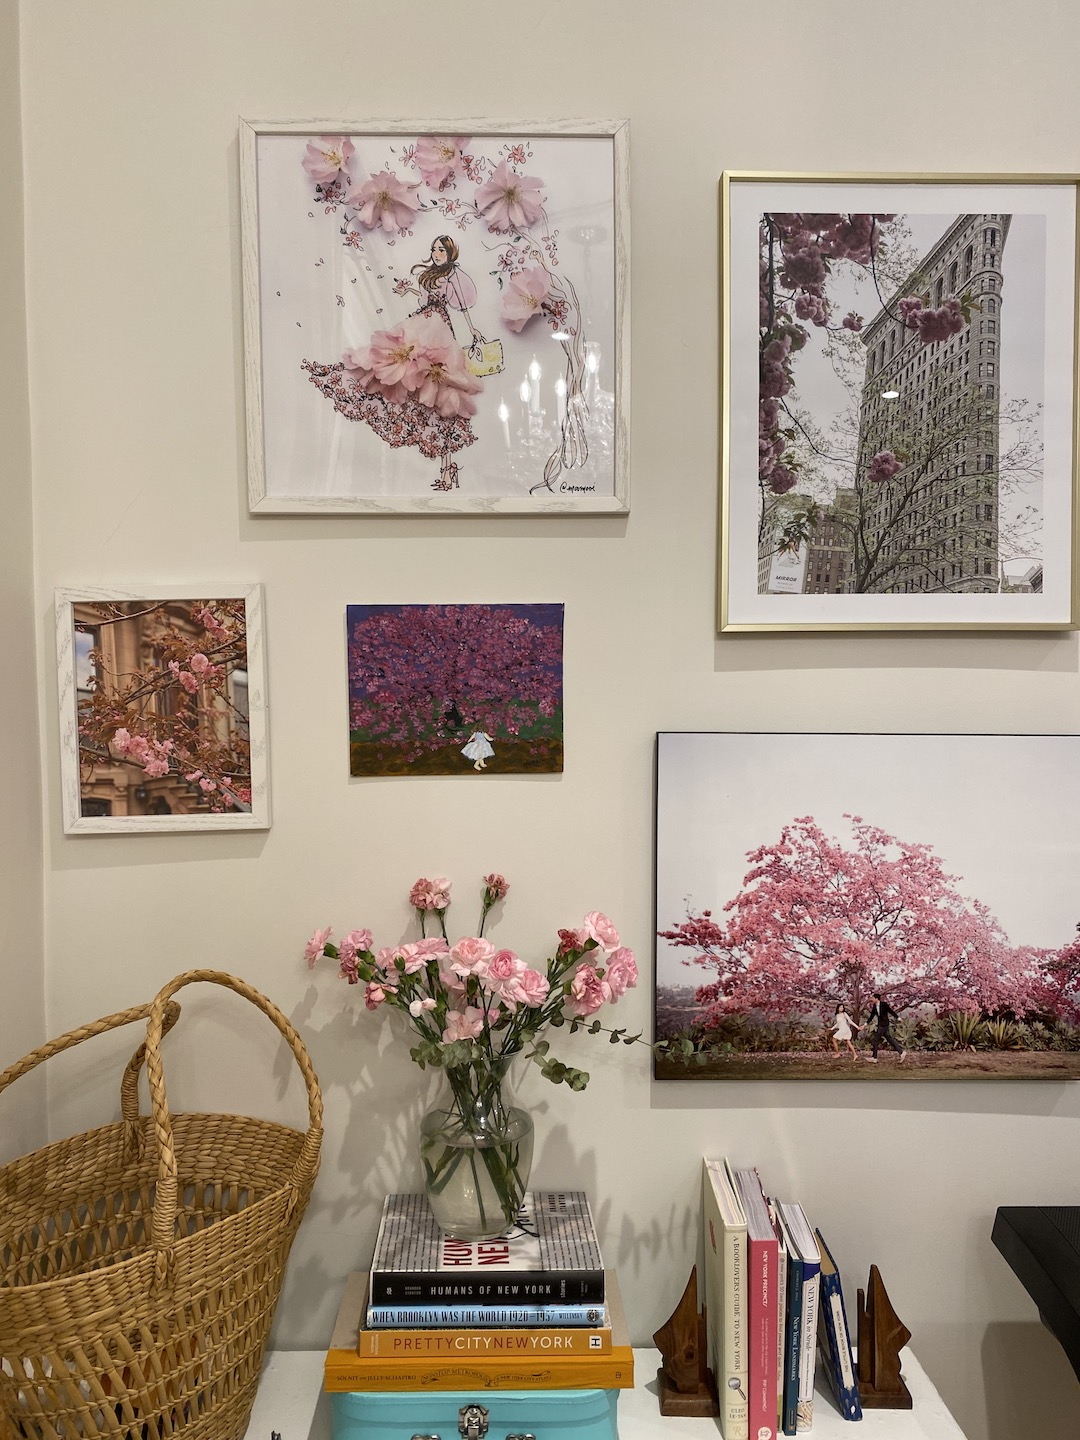 Her_Travel_Edit_Gallery_Wall_Room